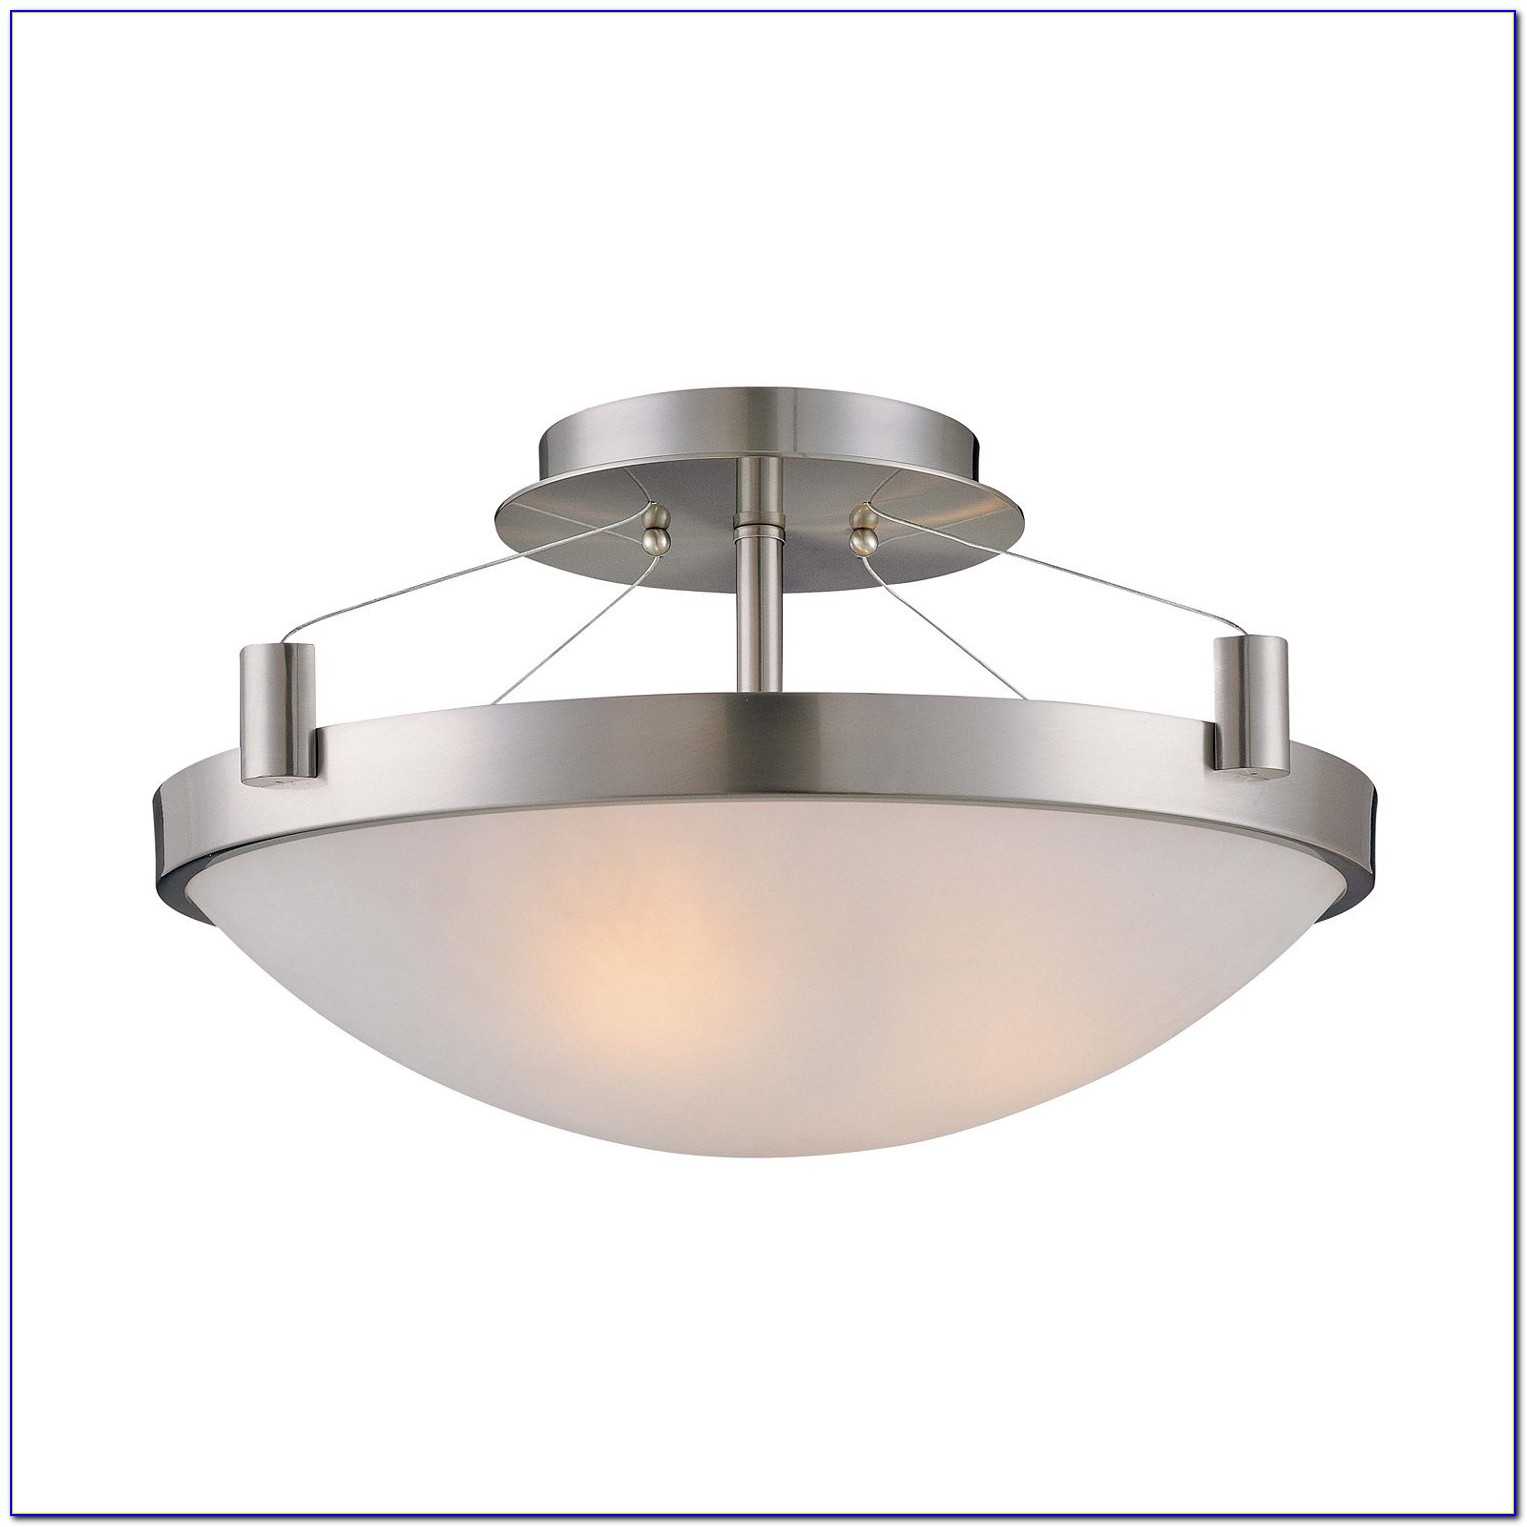 Brushed Nickel Semi Flush Ceiling Light